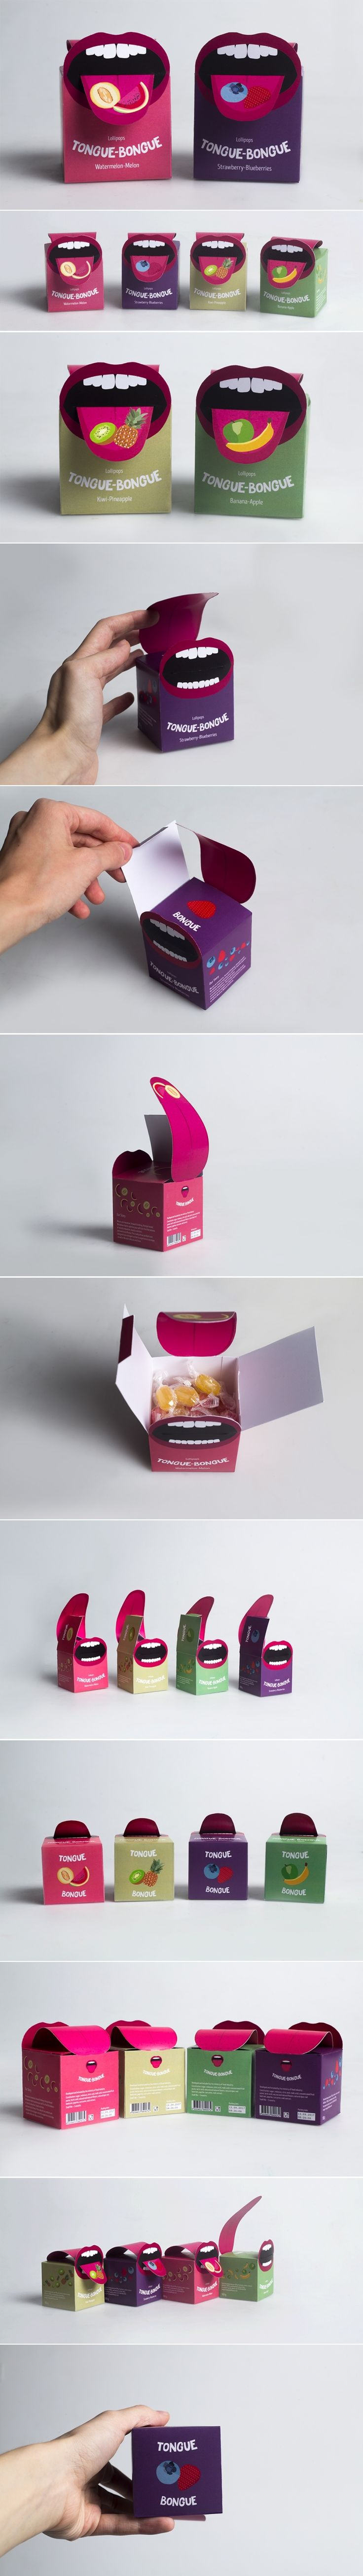 Check Out This Clever Tongue-Inspired Concept for Candy Packaging — The Dieline   Packaging & Branding Design & Innovation News